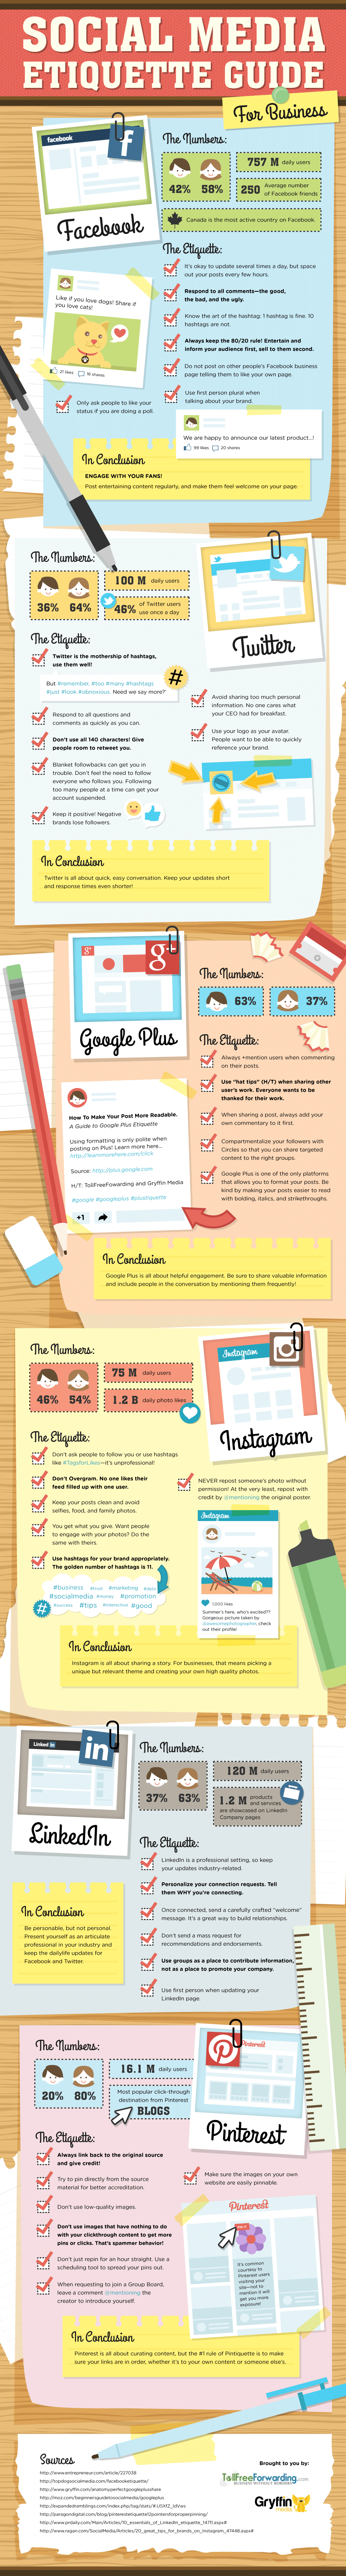 38+ Effective Social Media Etiquette Tips for Business Owners